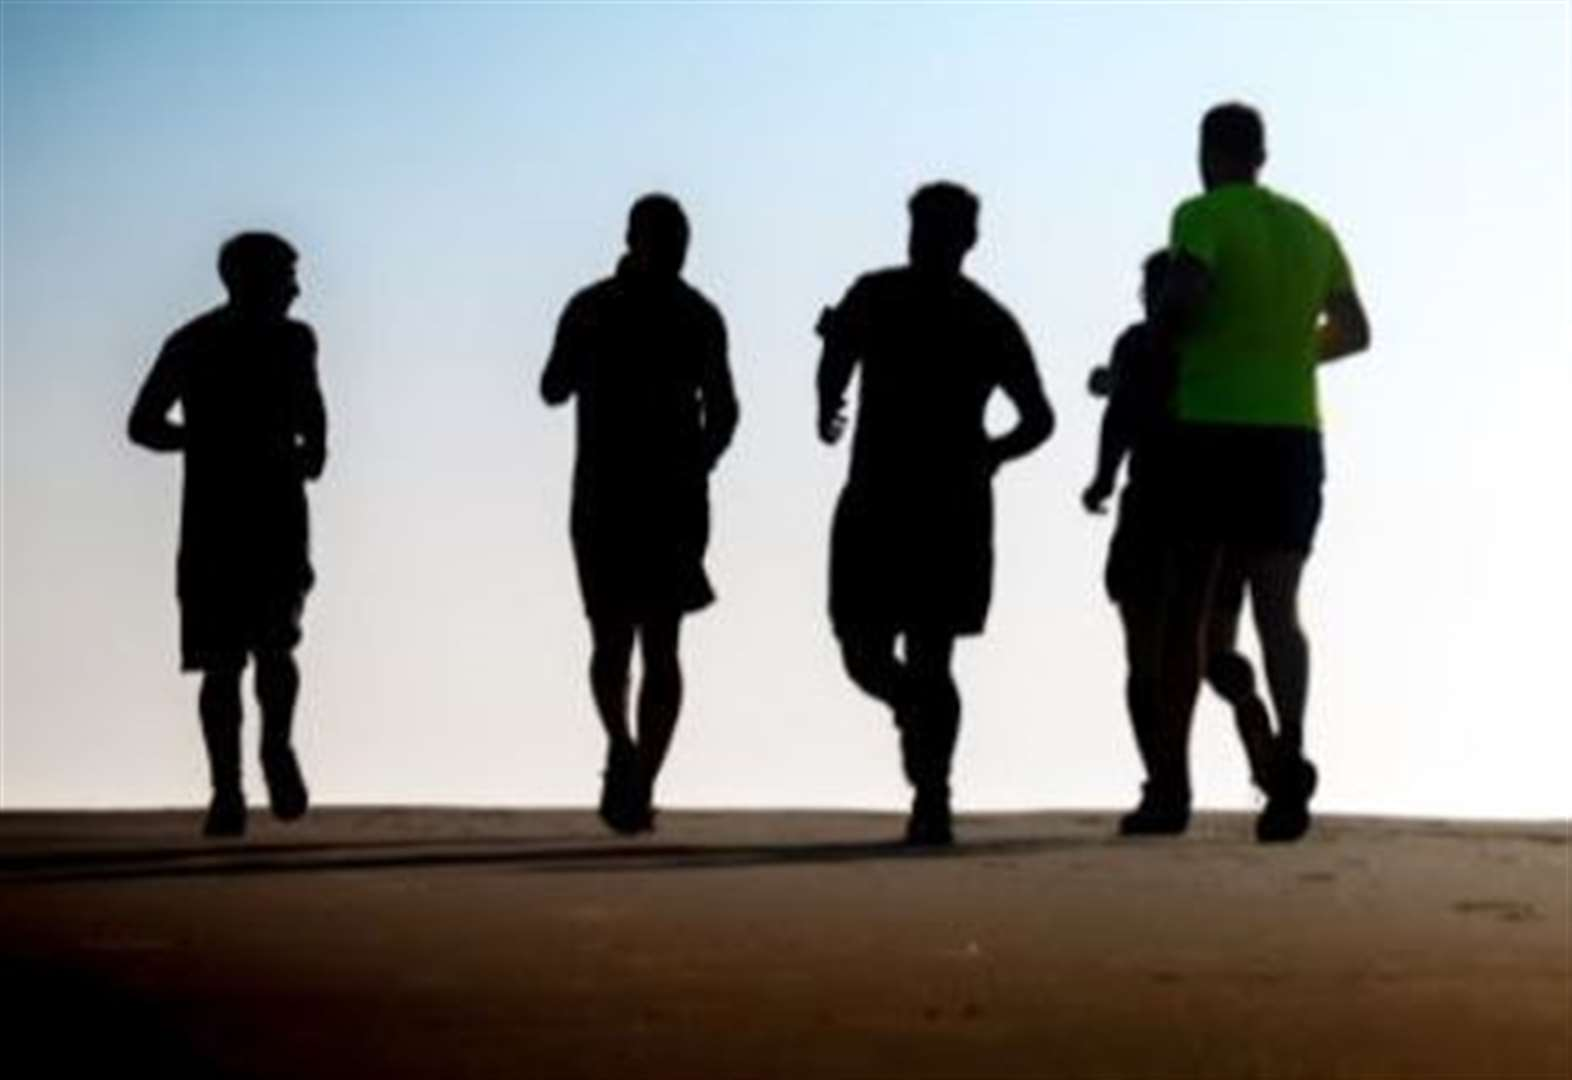 Sandbank home to 'Britain's most surreal 5km run'